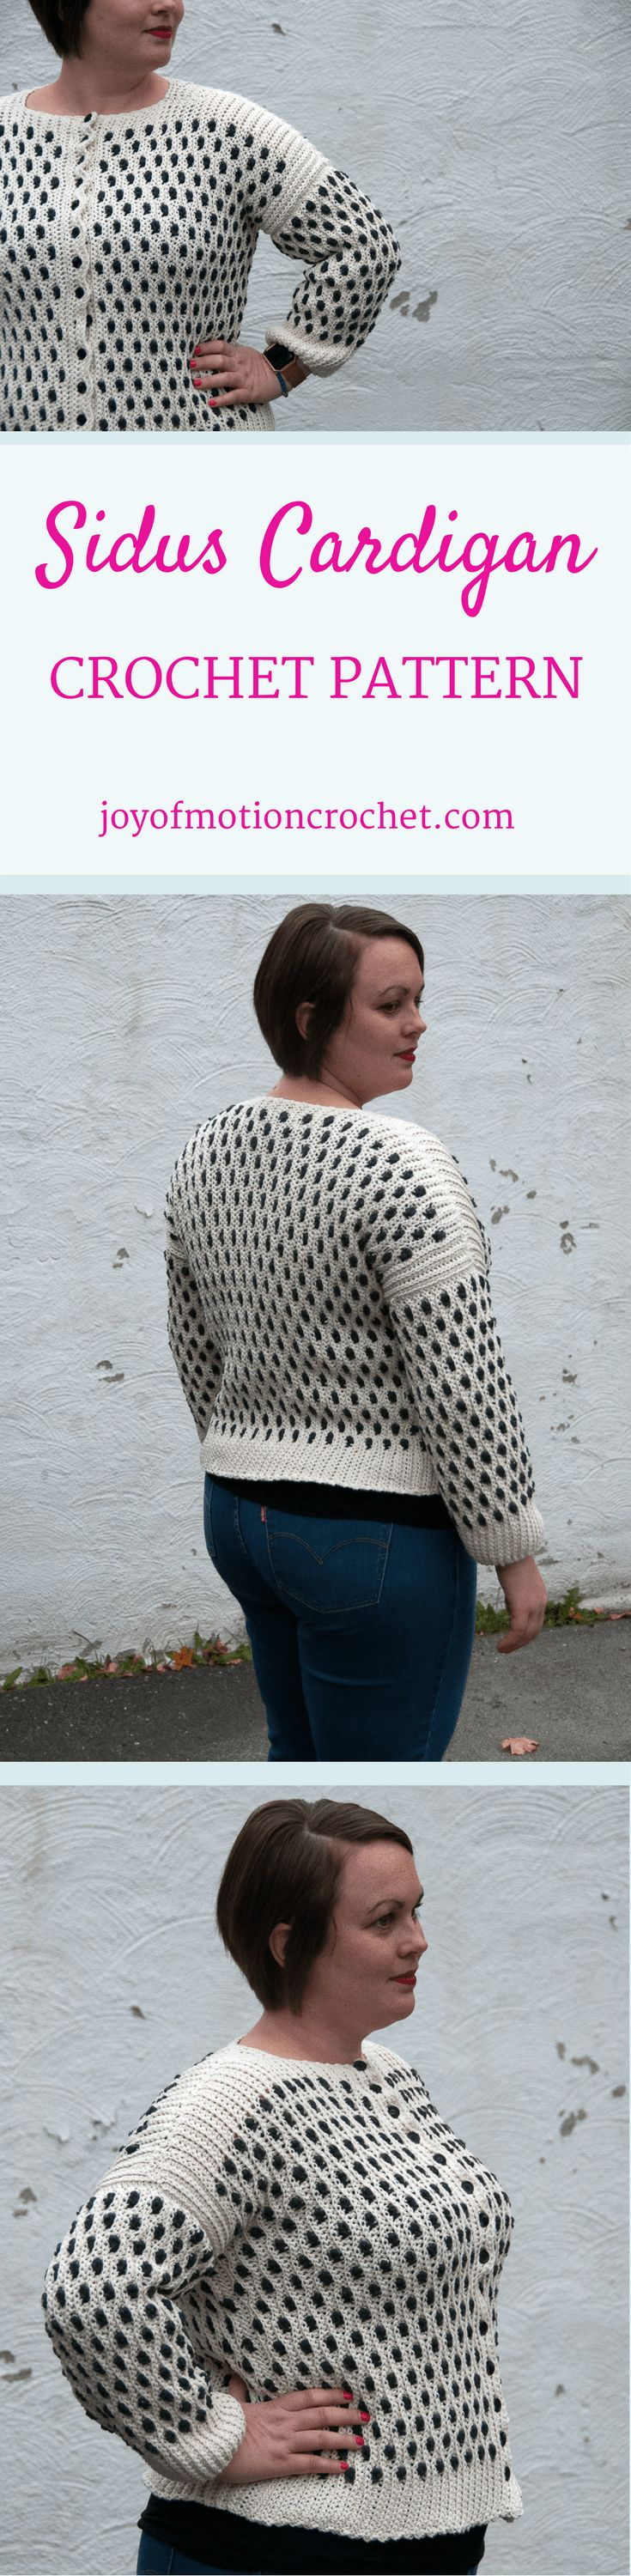 The Sidus Cardigan a crochet pattern. Woman's cardigan crochet pattern with skill level intermediate. Make this fashionable crochet cardigan with you own hook & yarn. Cardigan crochet pattern intermediate for her . Crochet cardigan | woman's crochet cardigan | crochet pattern for her | fashionable crochet cardigan | interesting crochet cardigan | click to learn more or repin to save it forever. via @http://pinterest.com/joyofmotion/